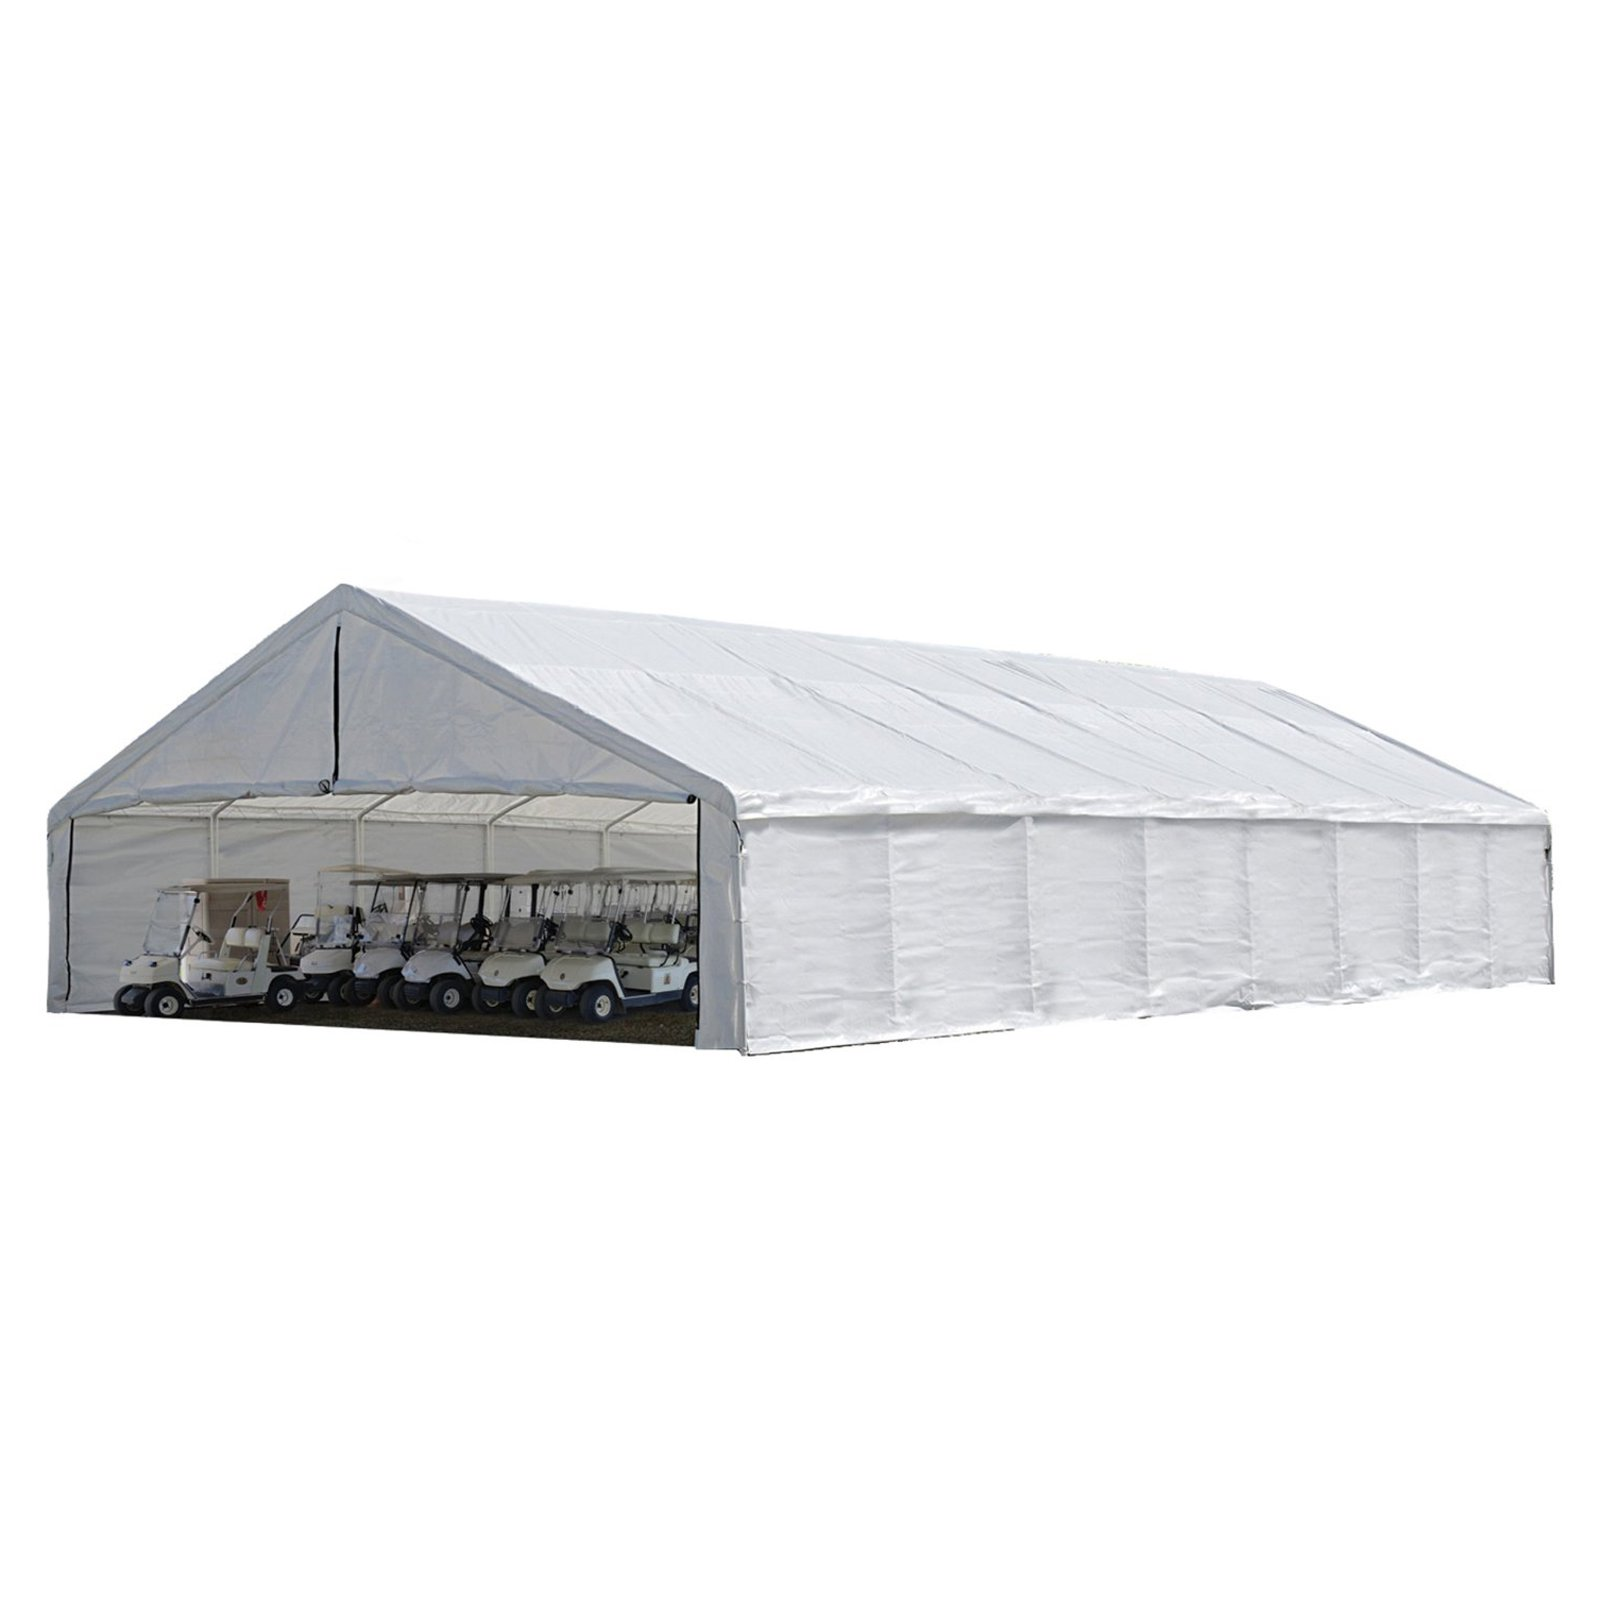 "30"" x 50"" Canopy White Replacement Cover for 2-3 8\ by ShelterLogic"